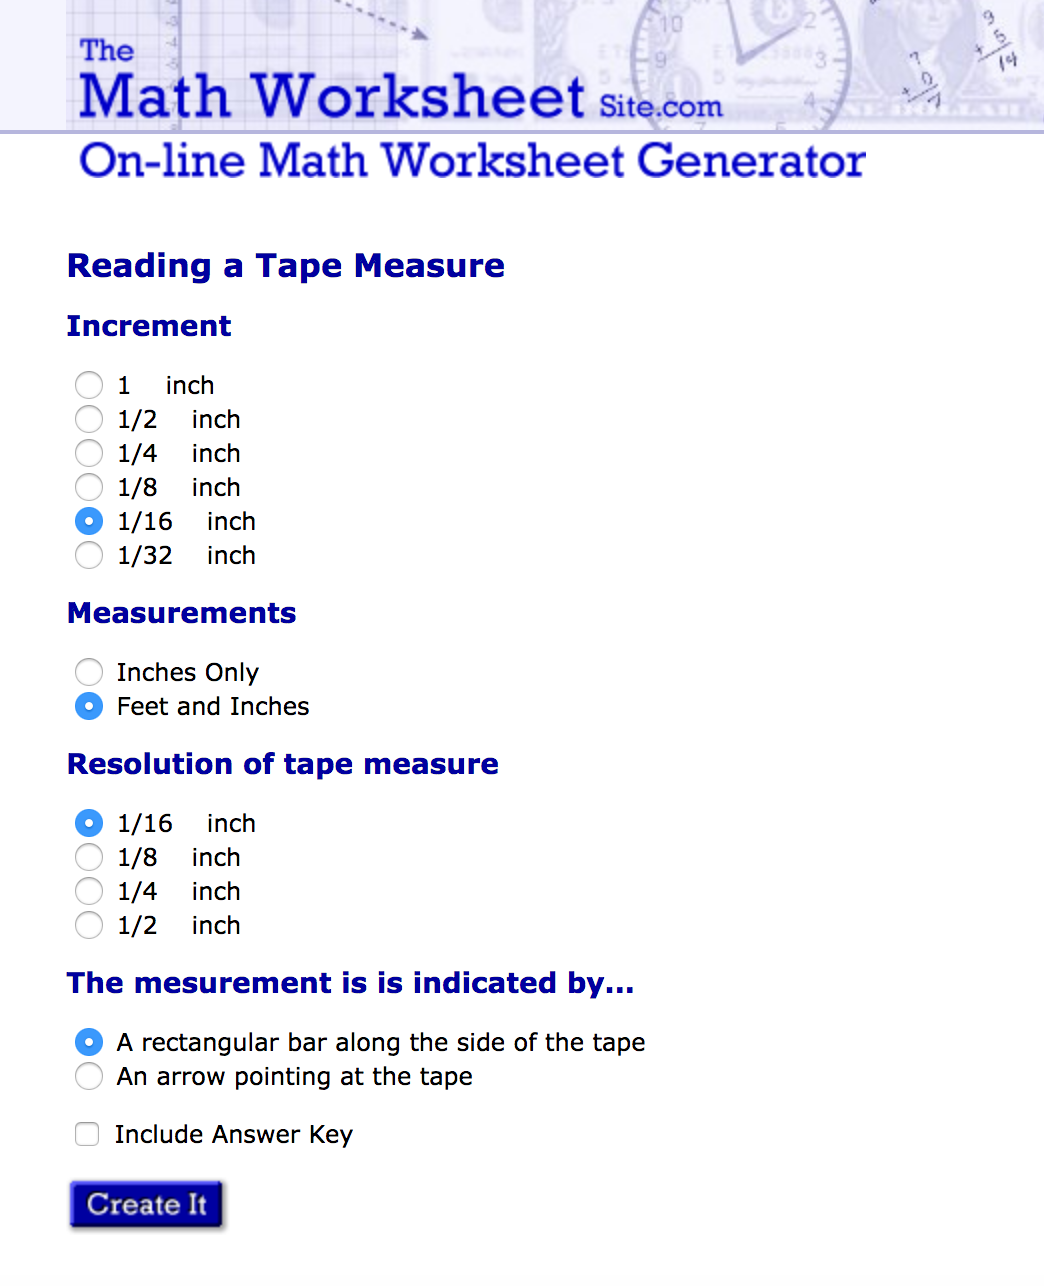 how to read a tape measure worksheet. picture how to read a tape measure worksheet